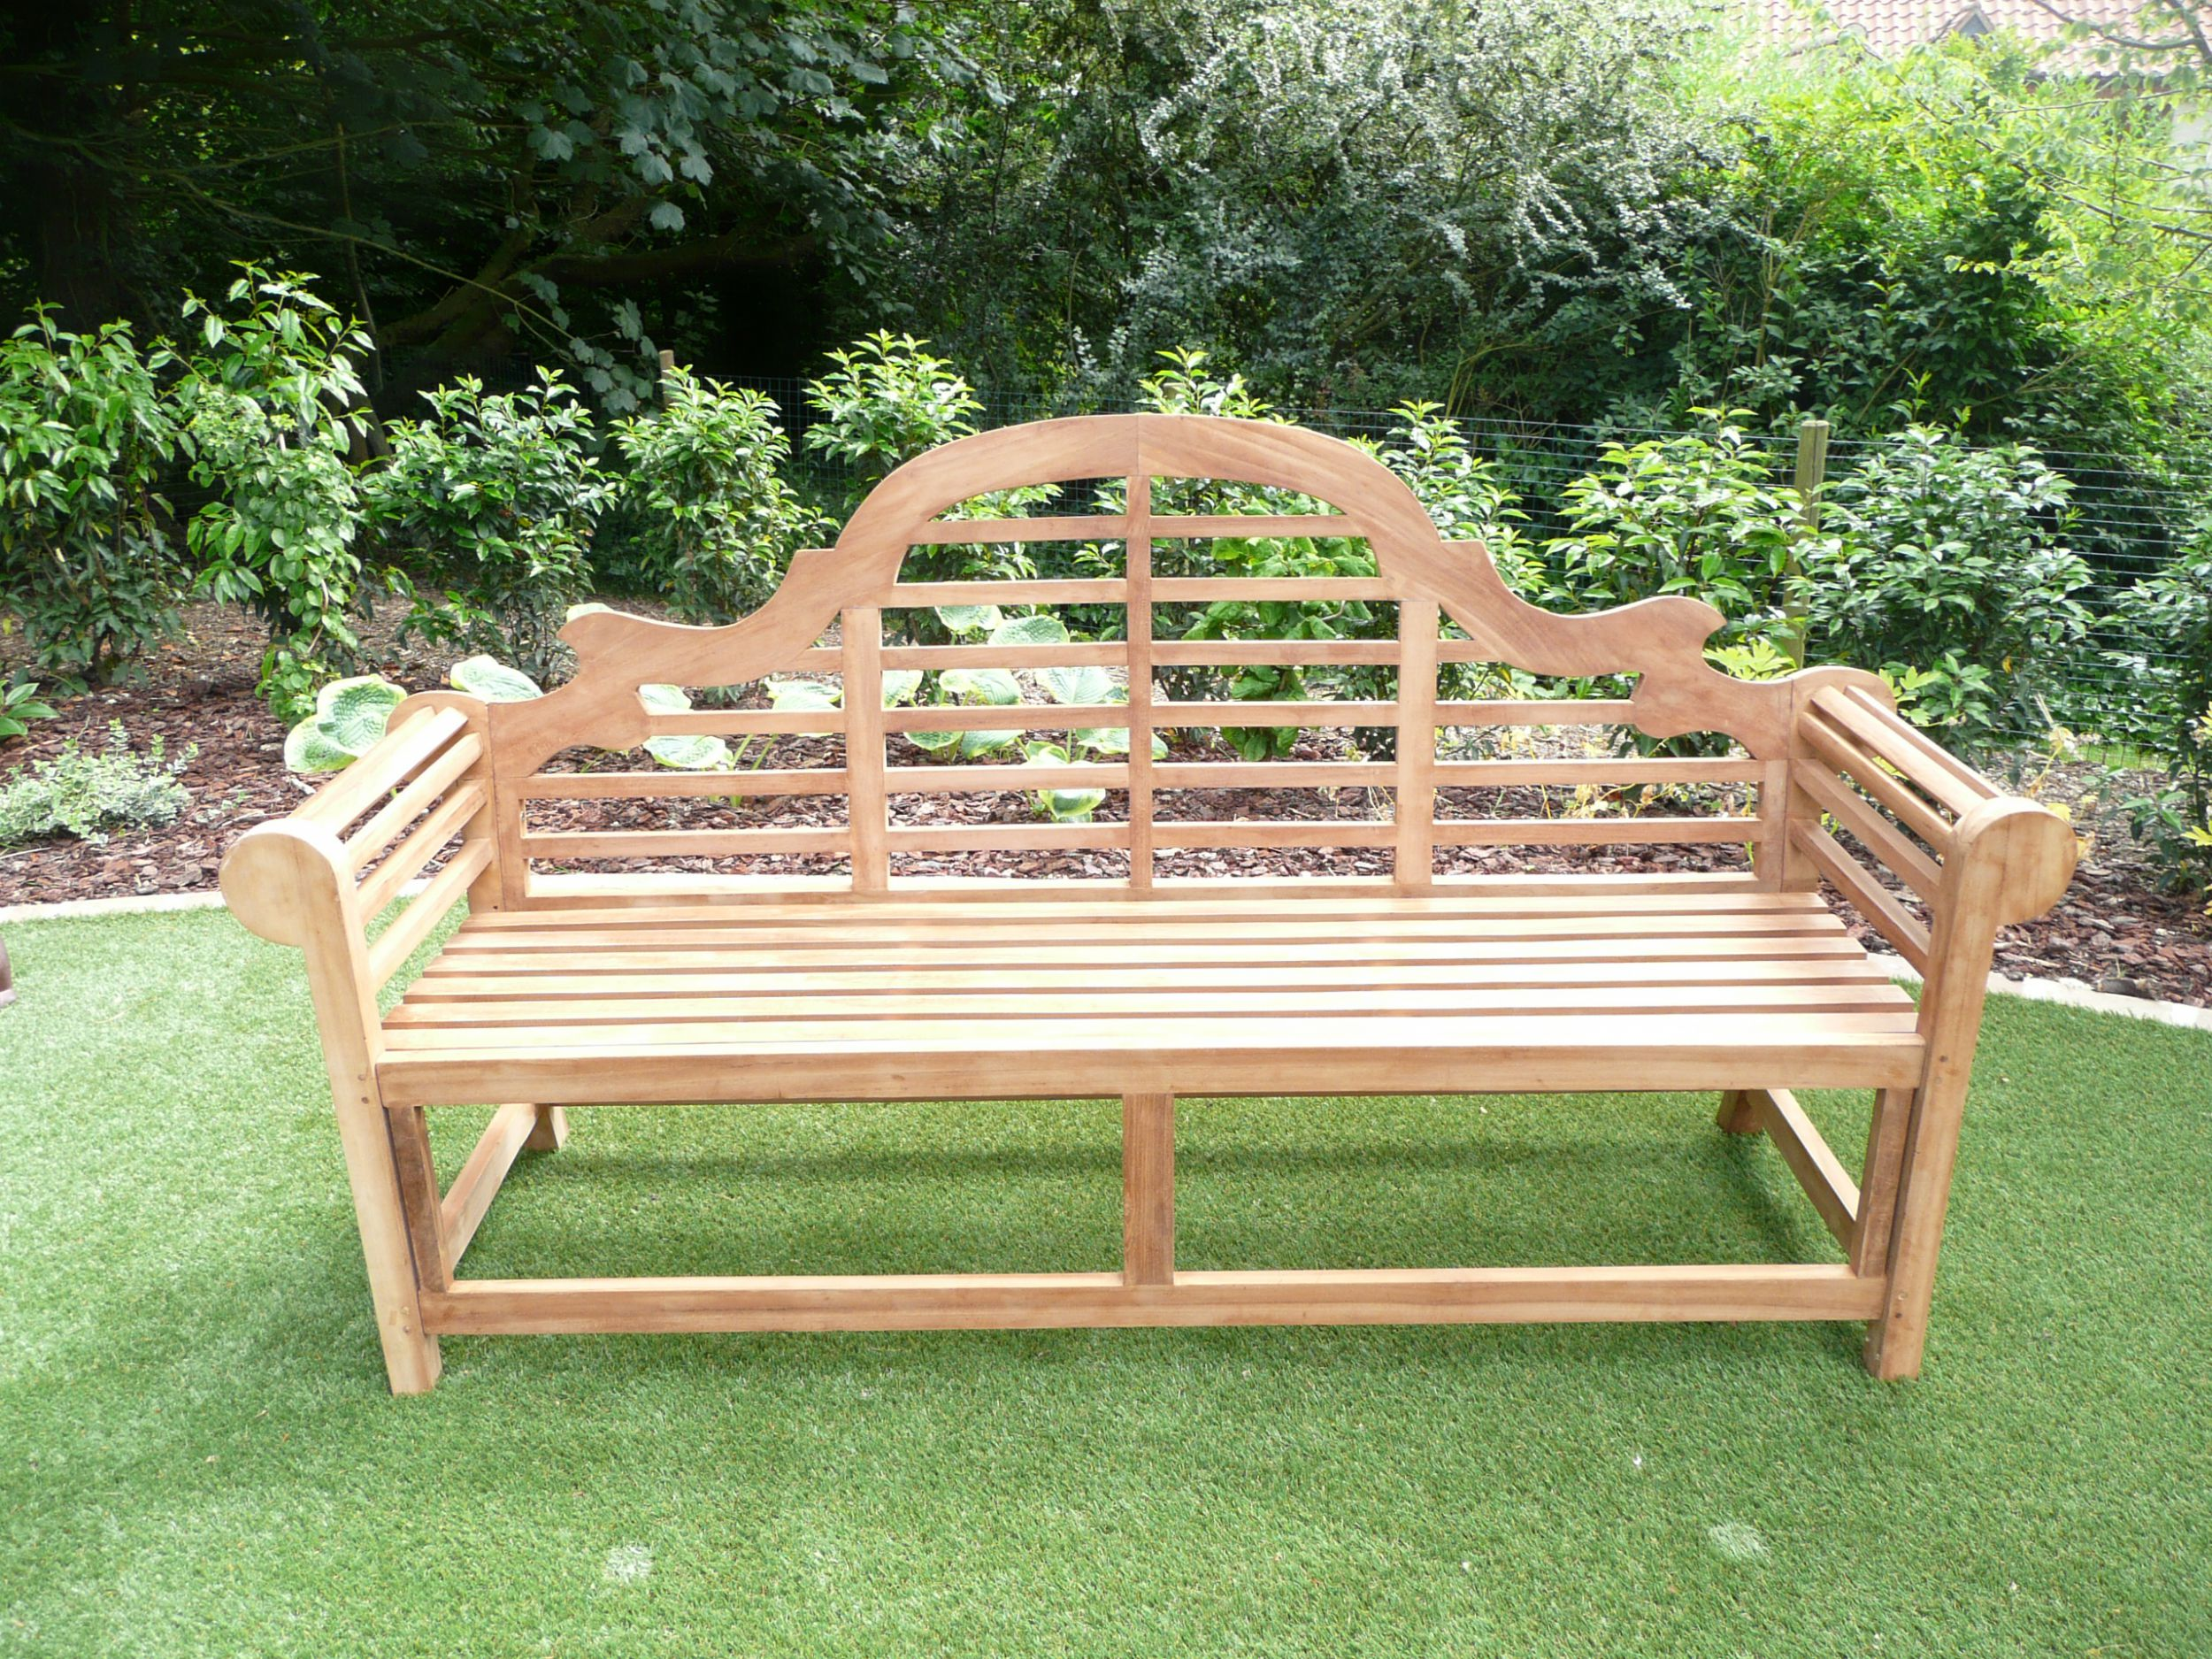 basket in feels and garden weave sweetiesthis seat looks outdoor ft style teak bench sturdylittle jakie beautiful our a has comfortable sturdy